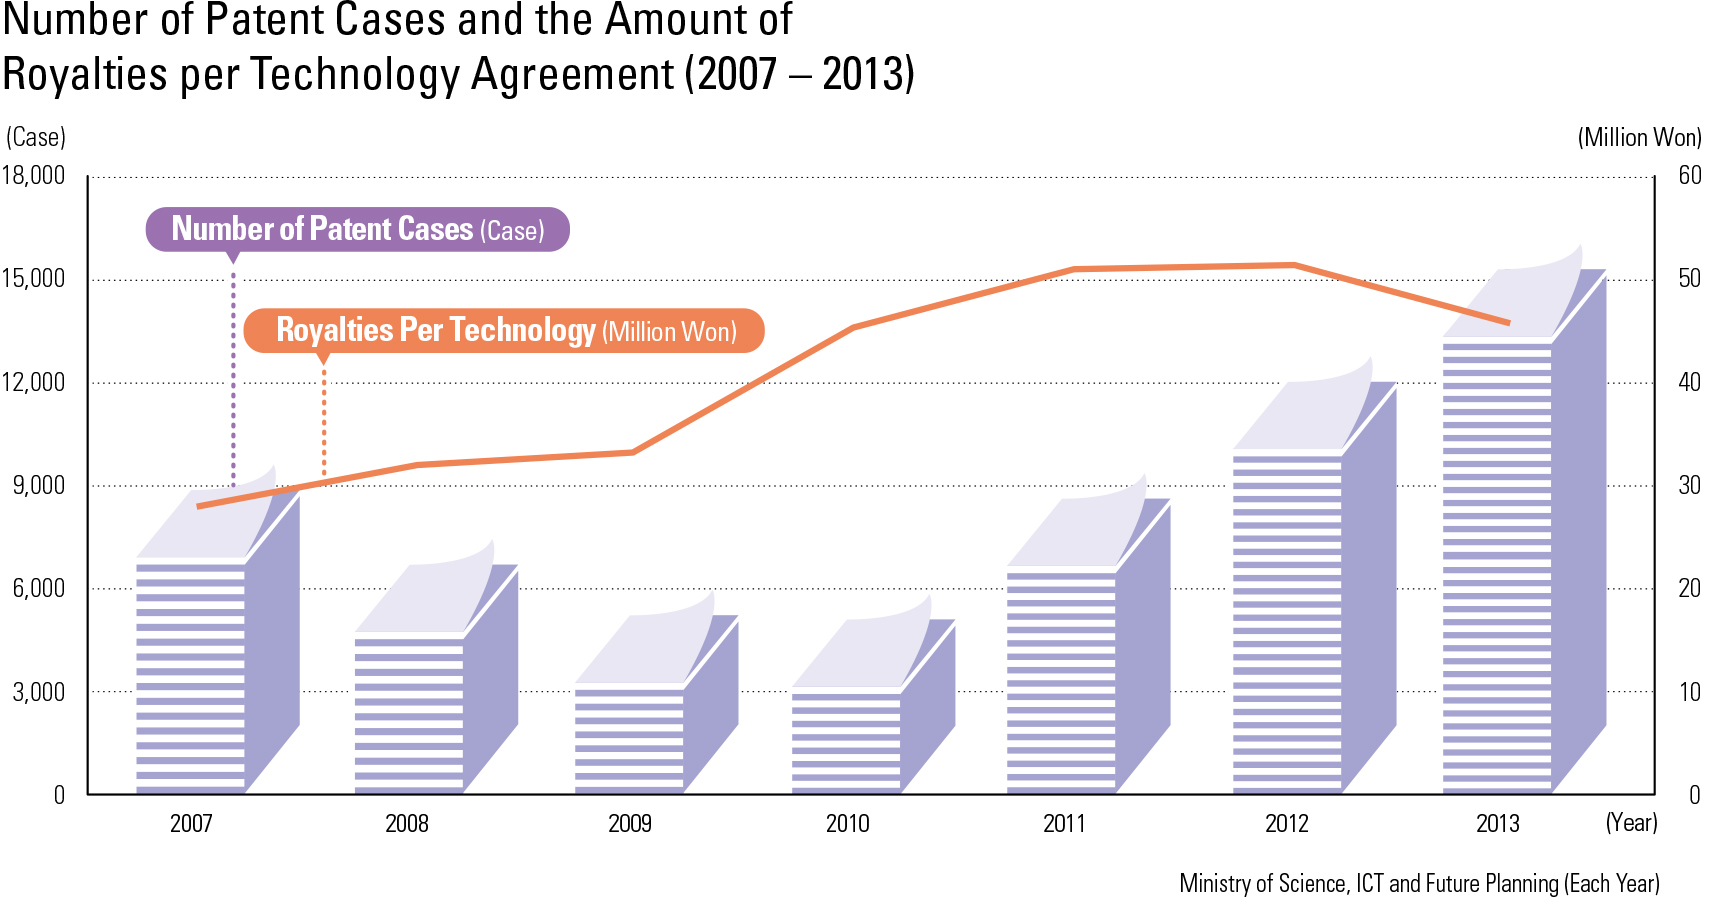 Number of Patent Cases and the Amount of Royalties per Technology Agreement (2007 – 2013)